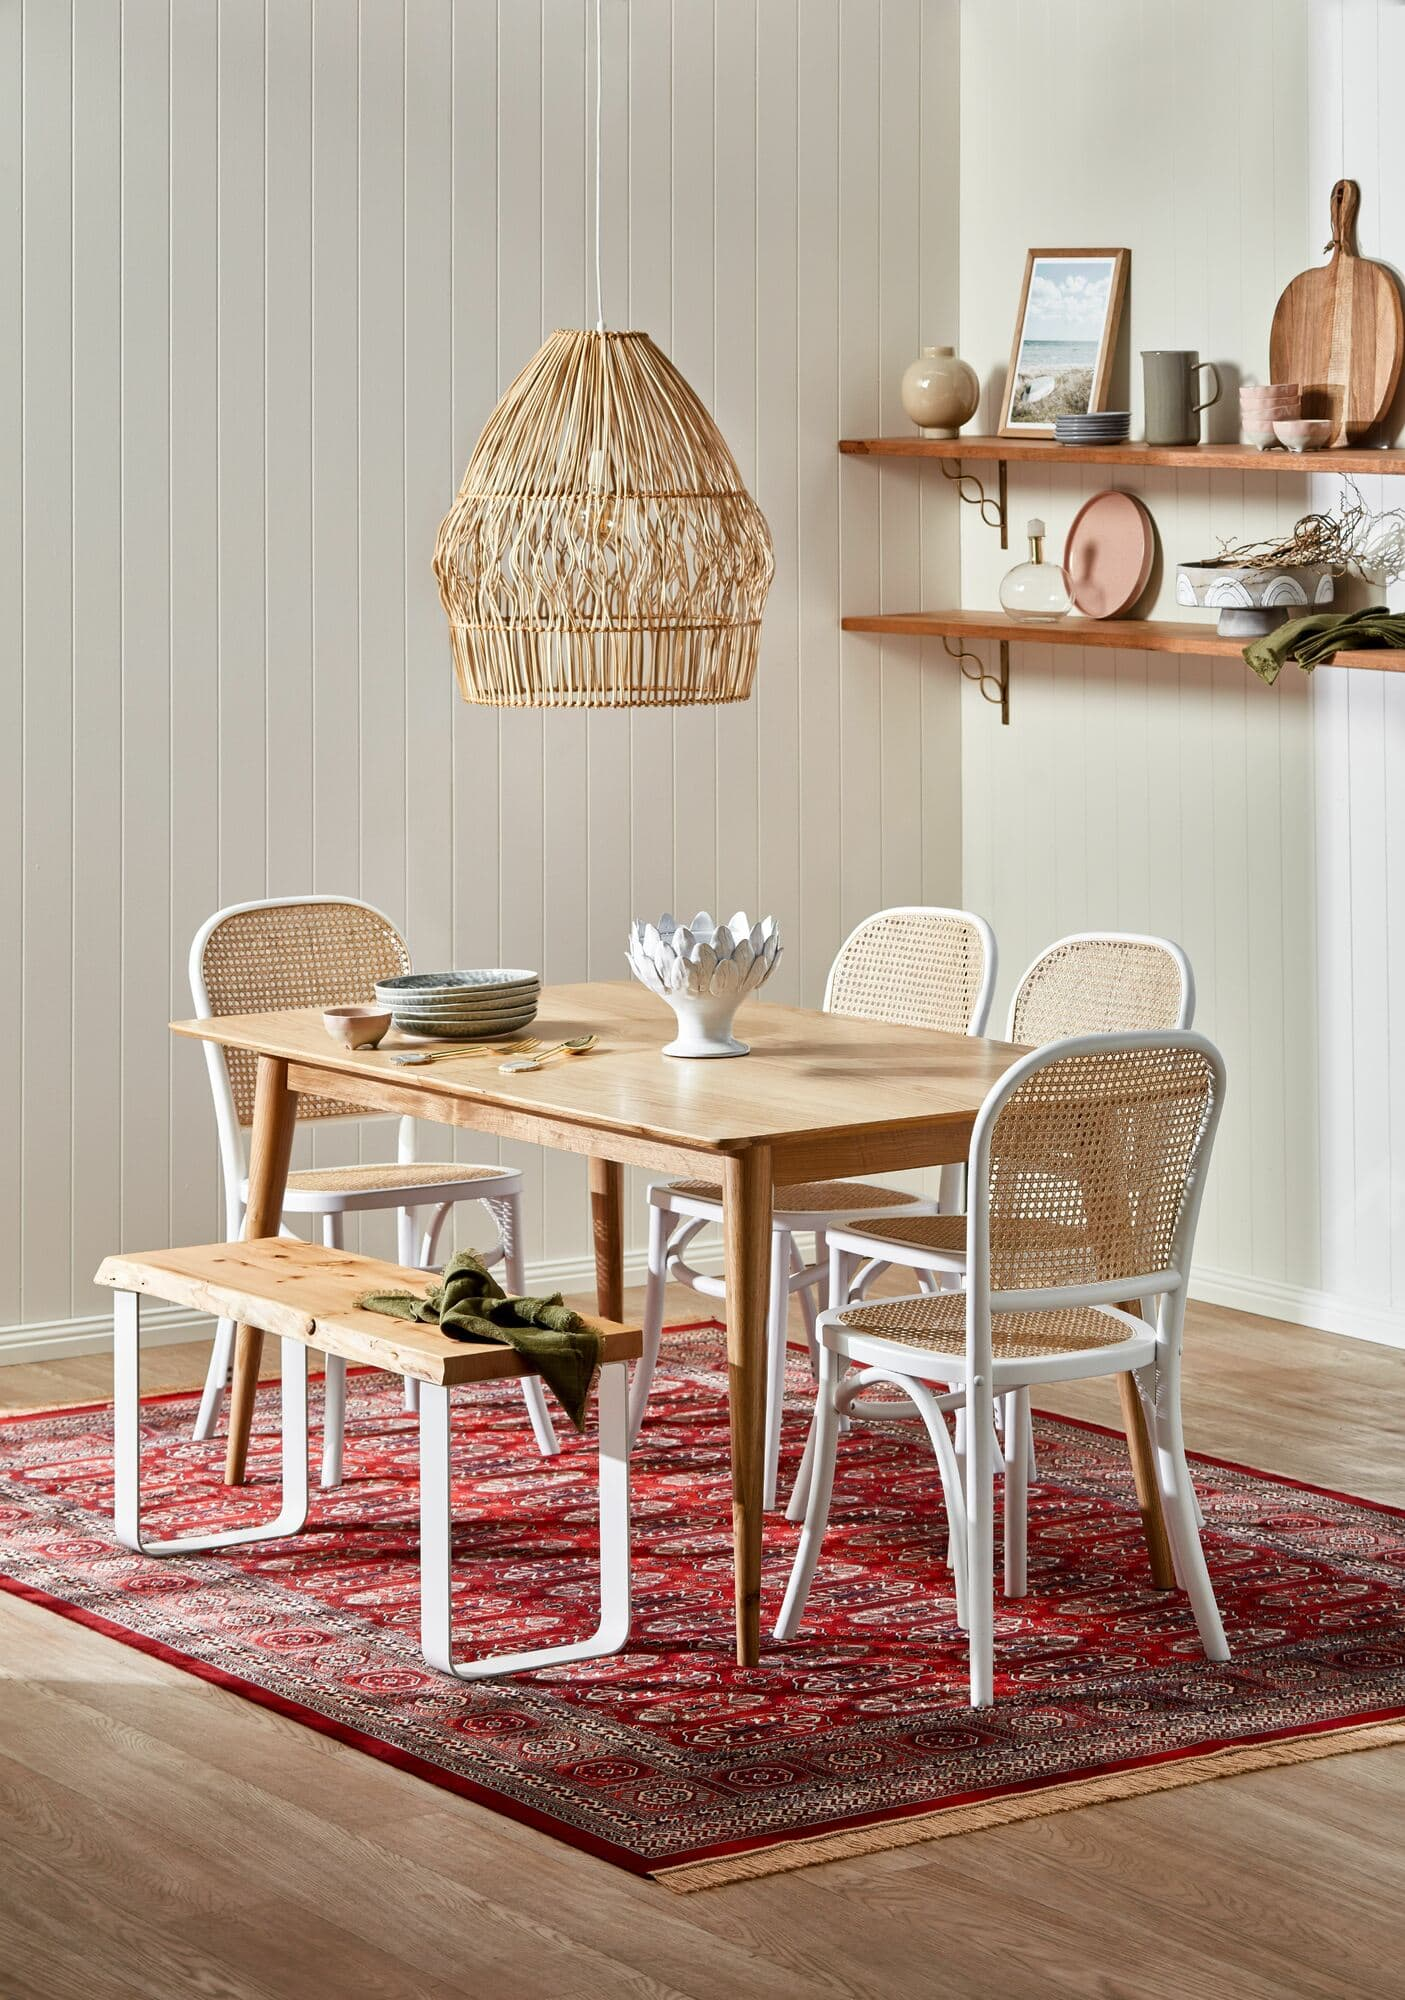 temple and webster dining room with rattan dining chairs and red rug